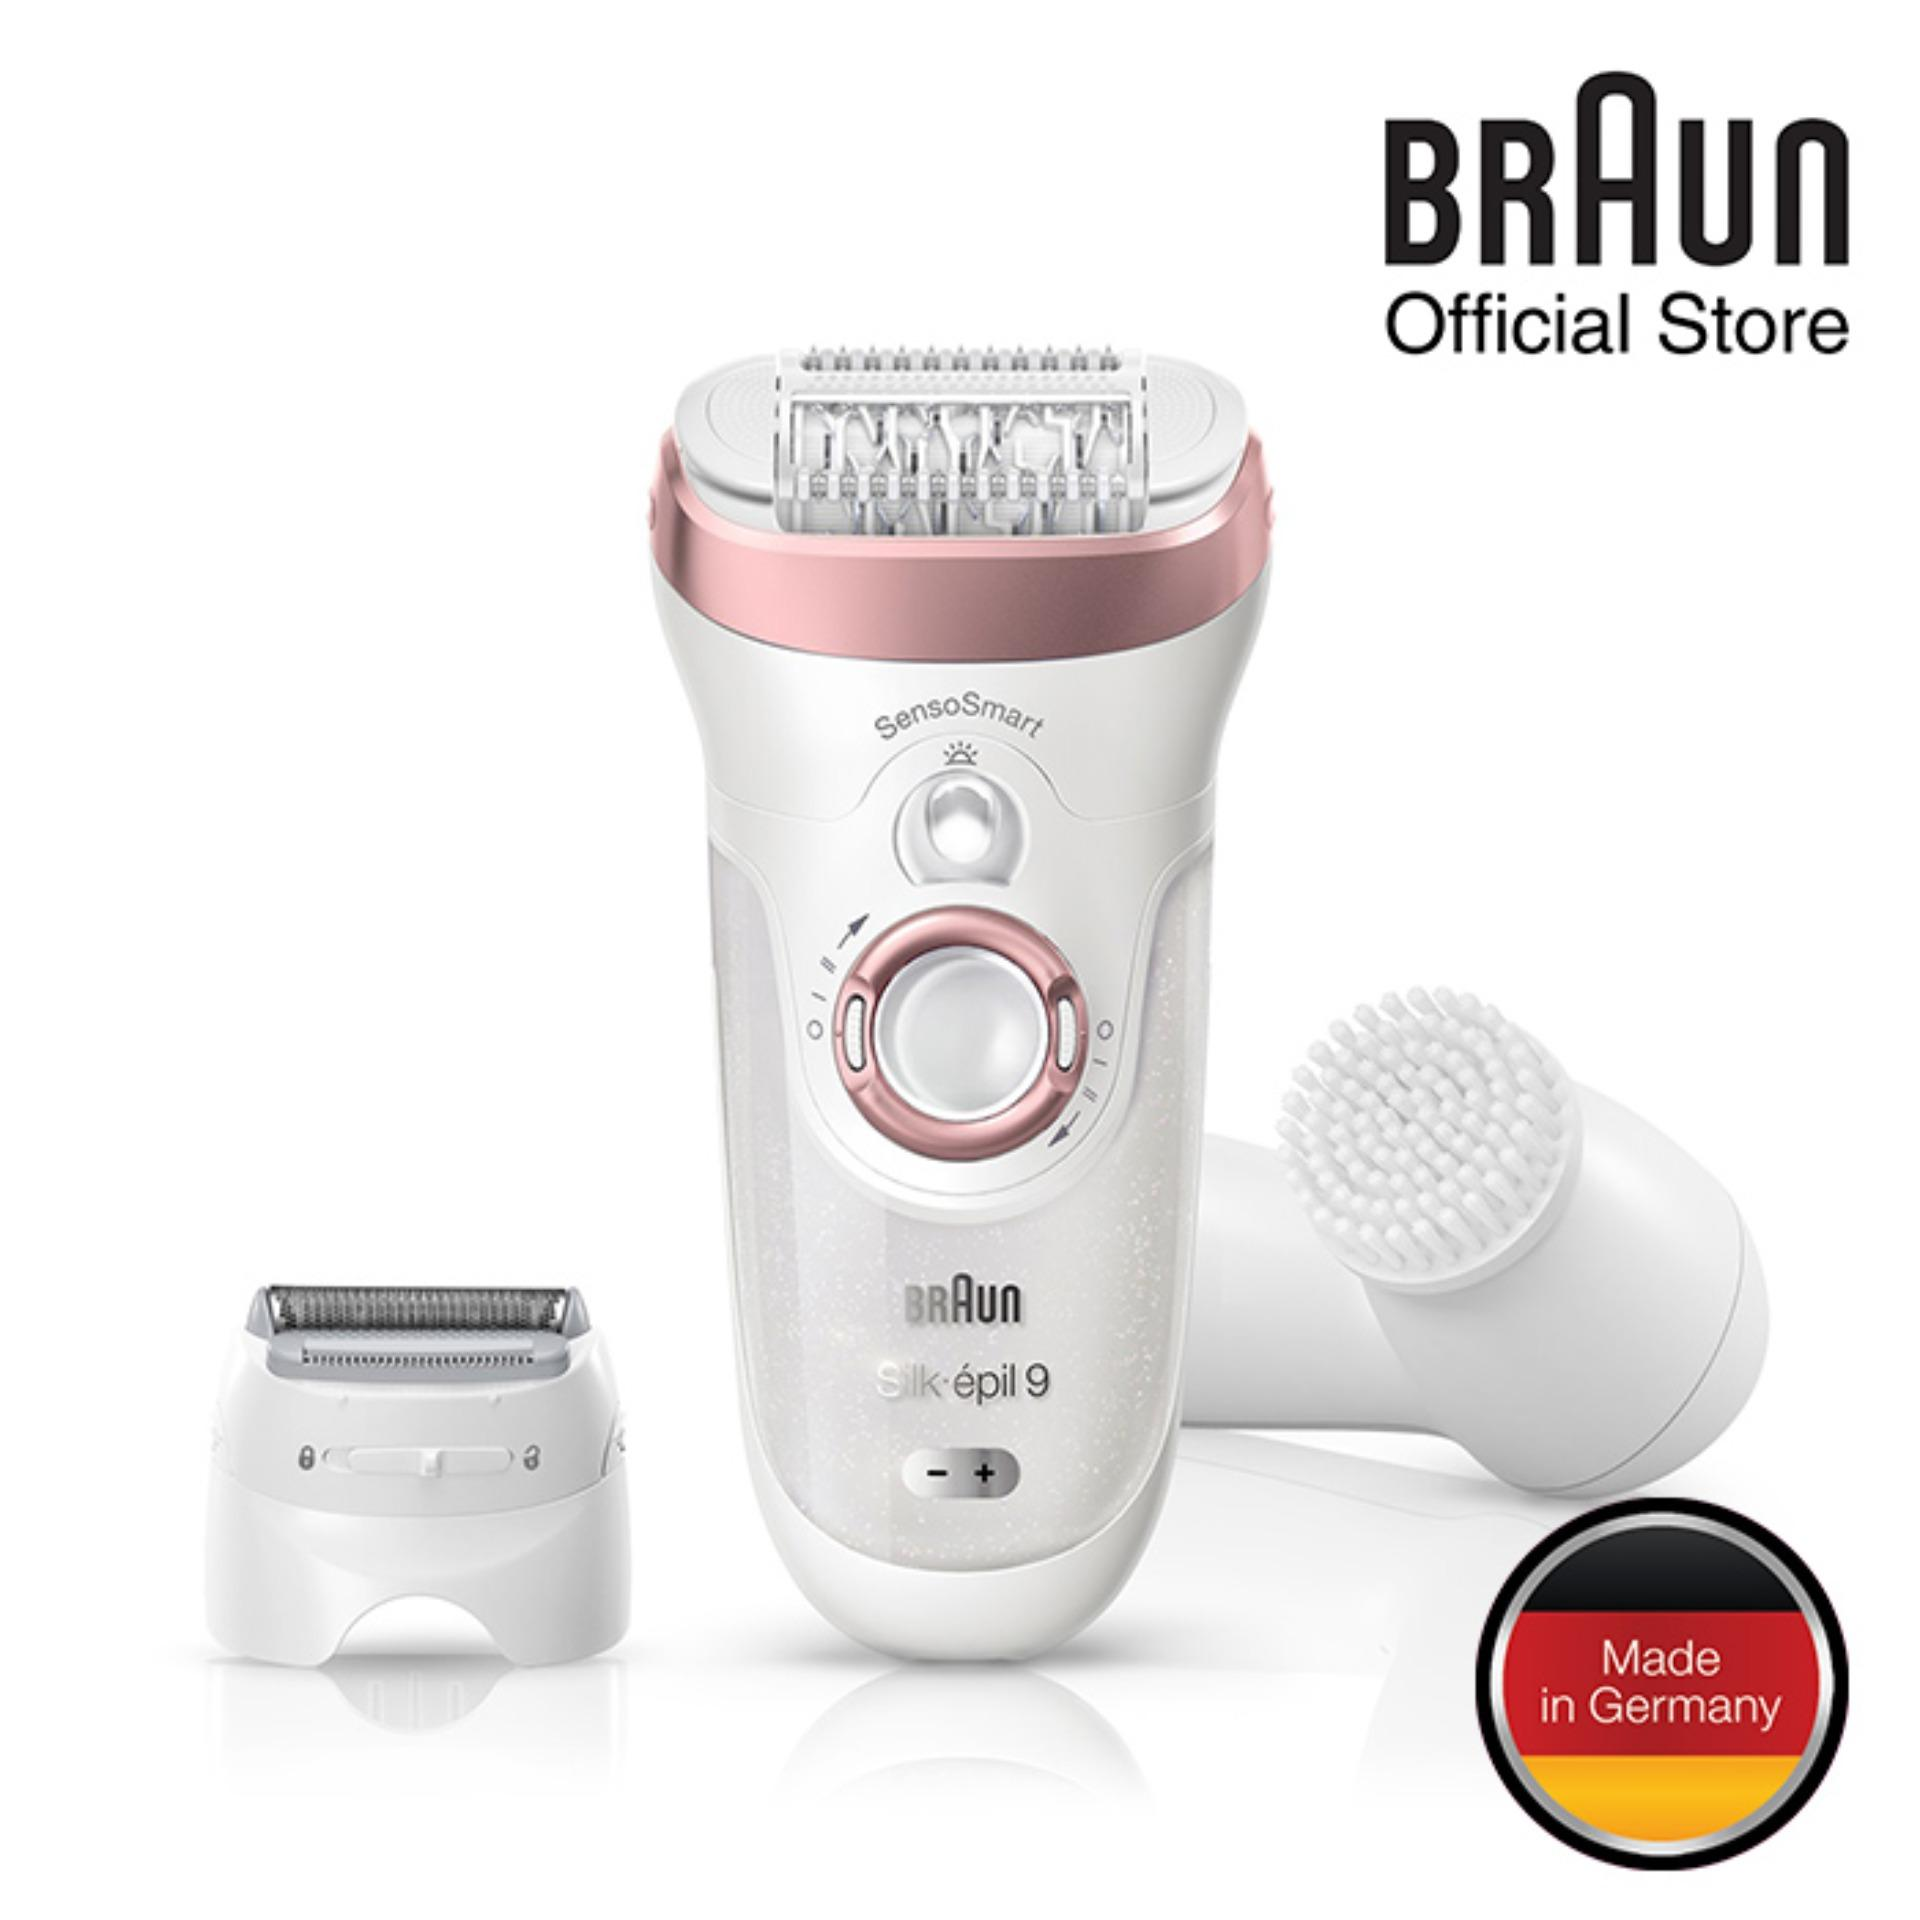 Braun Silk-épil 9 9880 Senso Smart™ Epilator Rose Gold - Cordless Wet & Dry Epilator With 7 Extras By Braun Official Store.